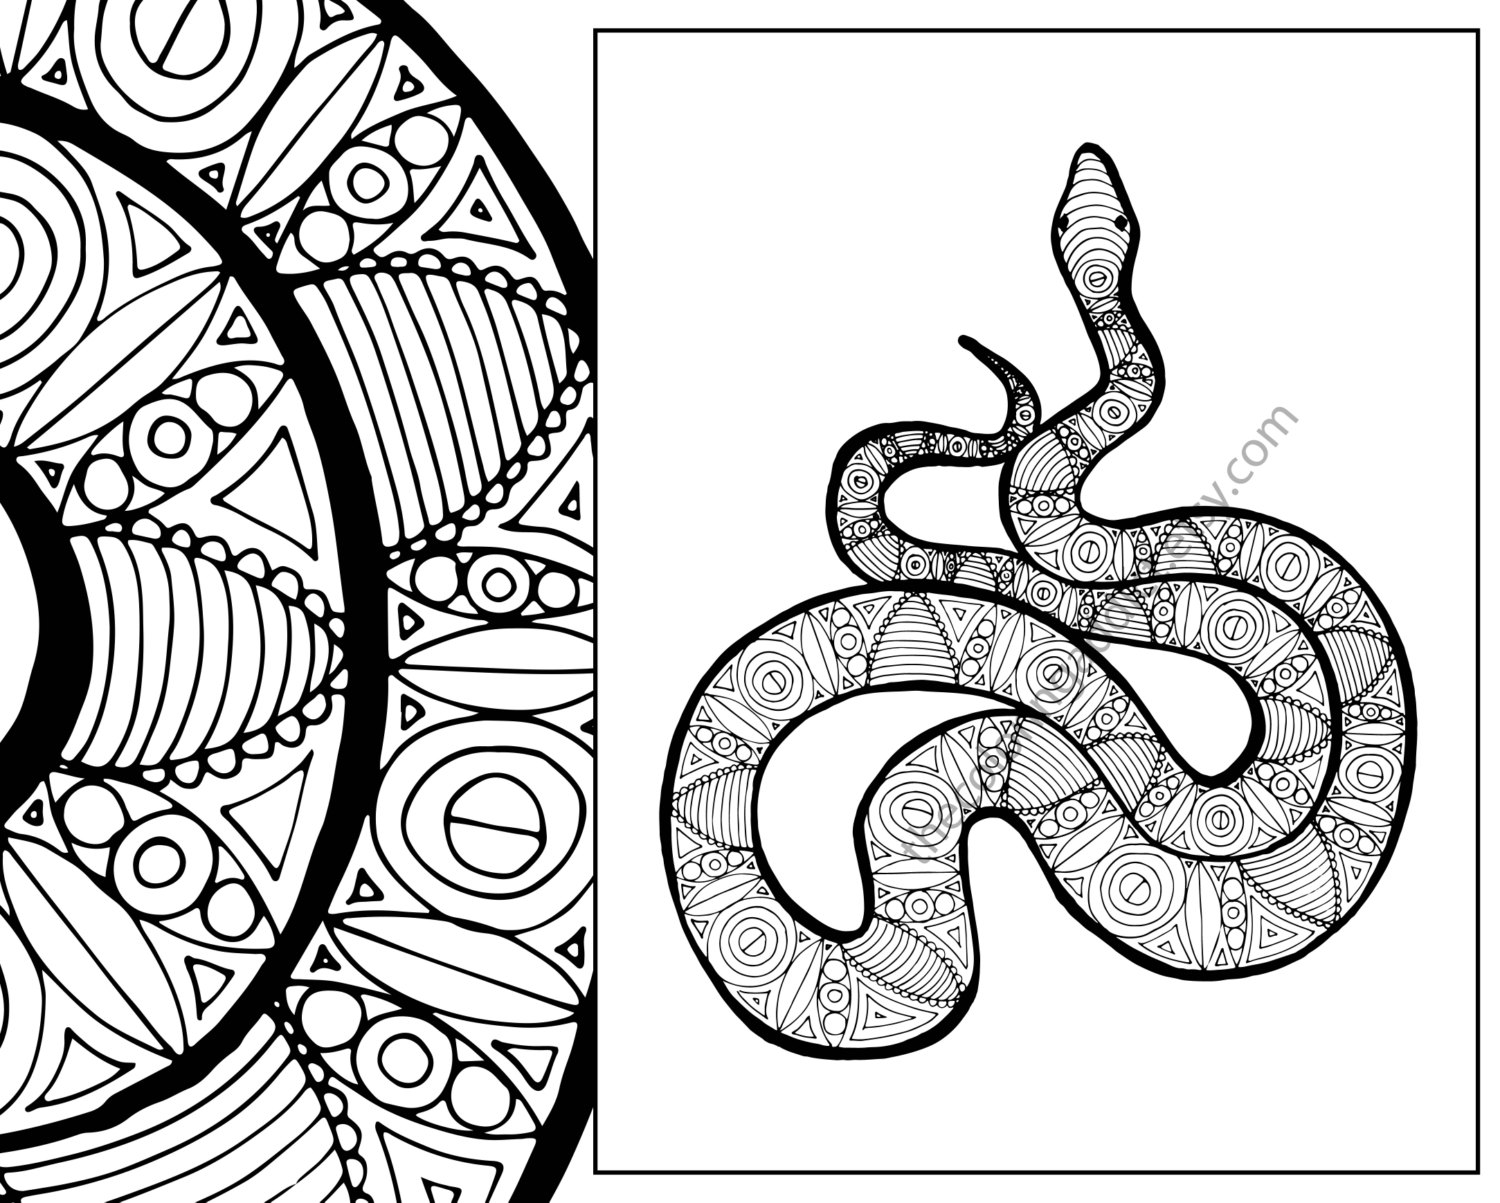 snake coloring pictures snake coloring sheet animal coloring pdf zentangle adult snake pictures coloring